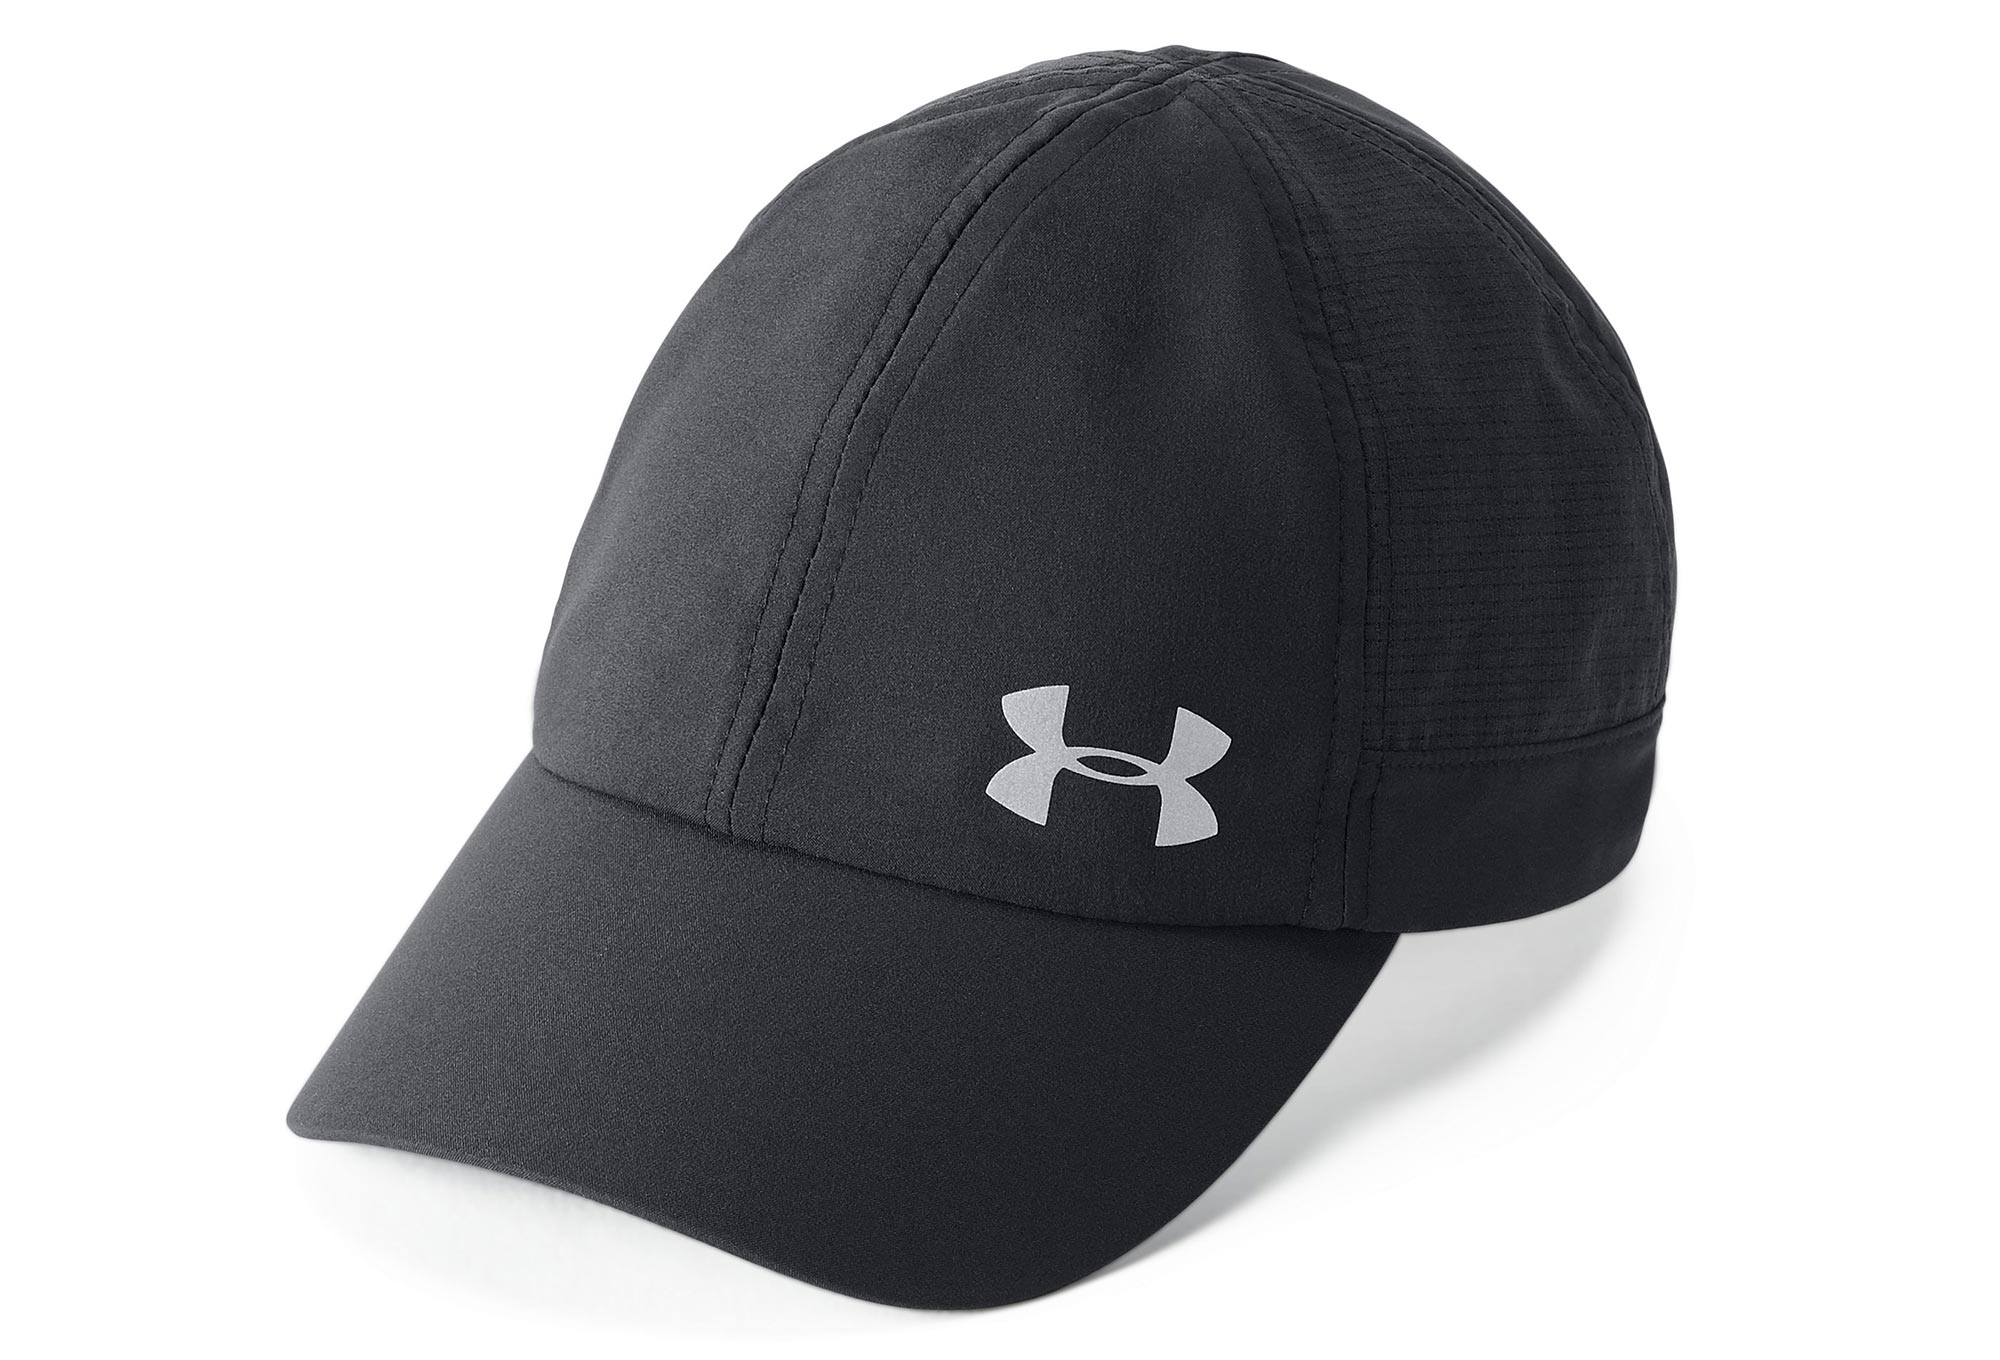 dbe5e00150362 Gorra Under Armour Fly-By para mujer Negro